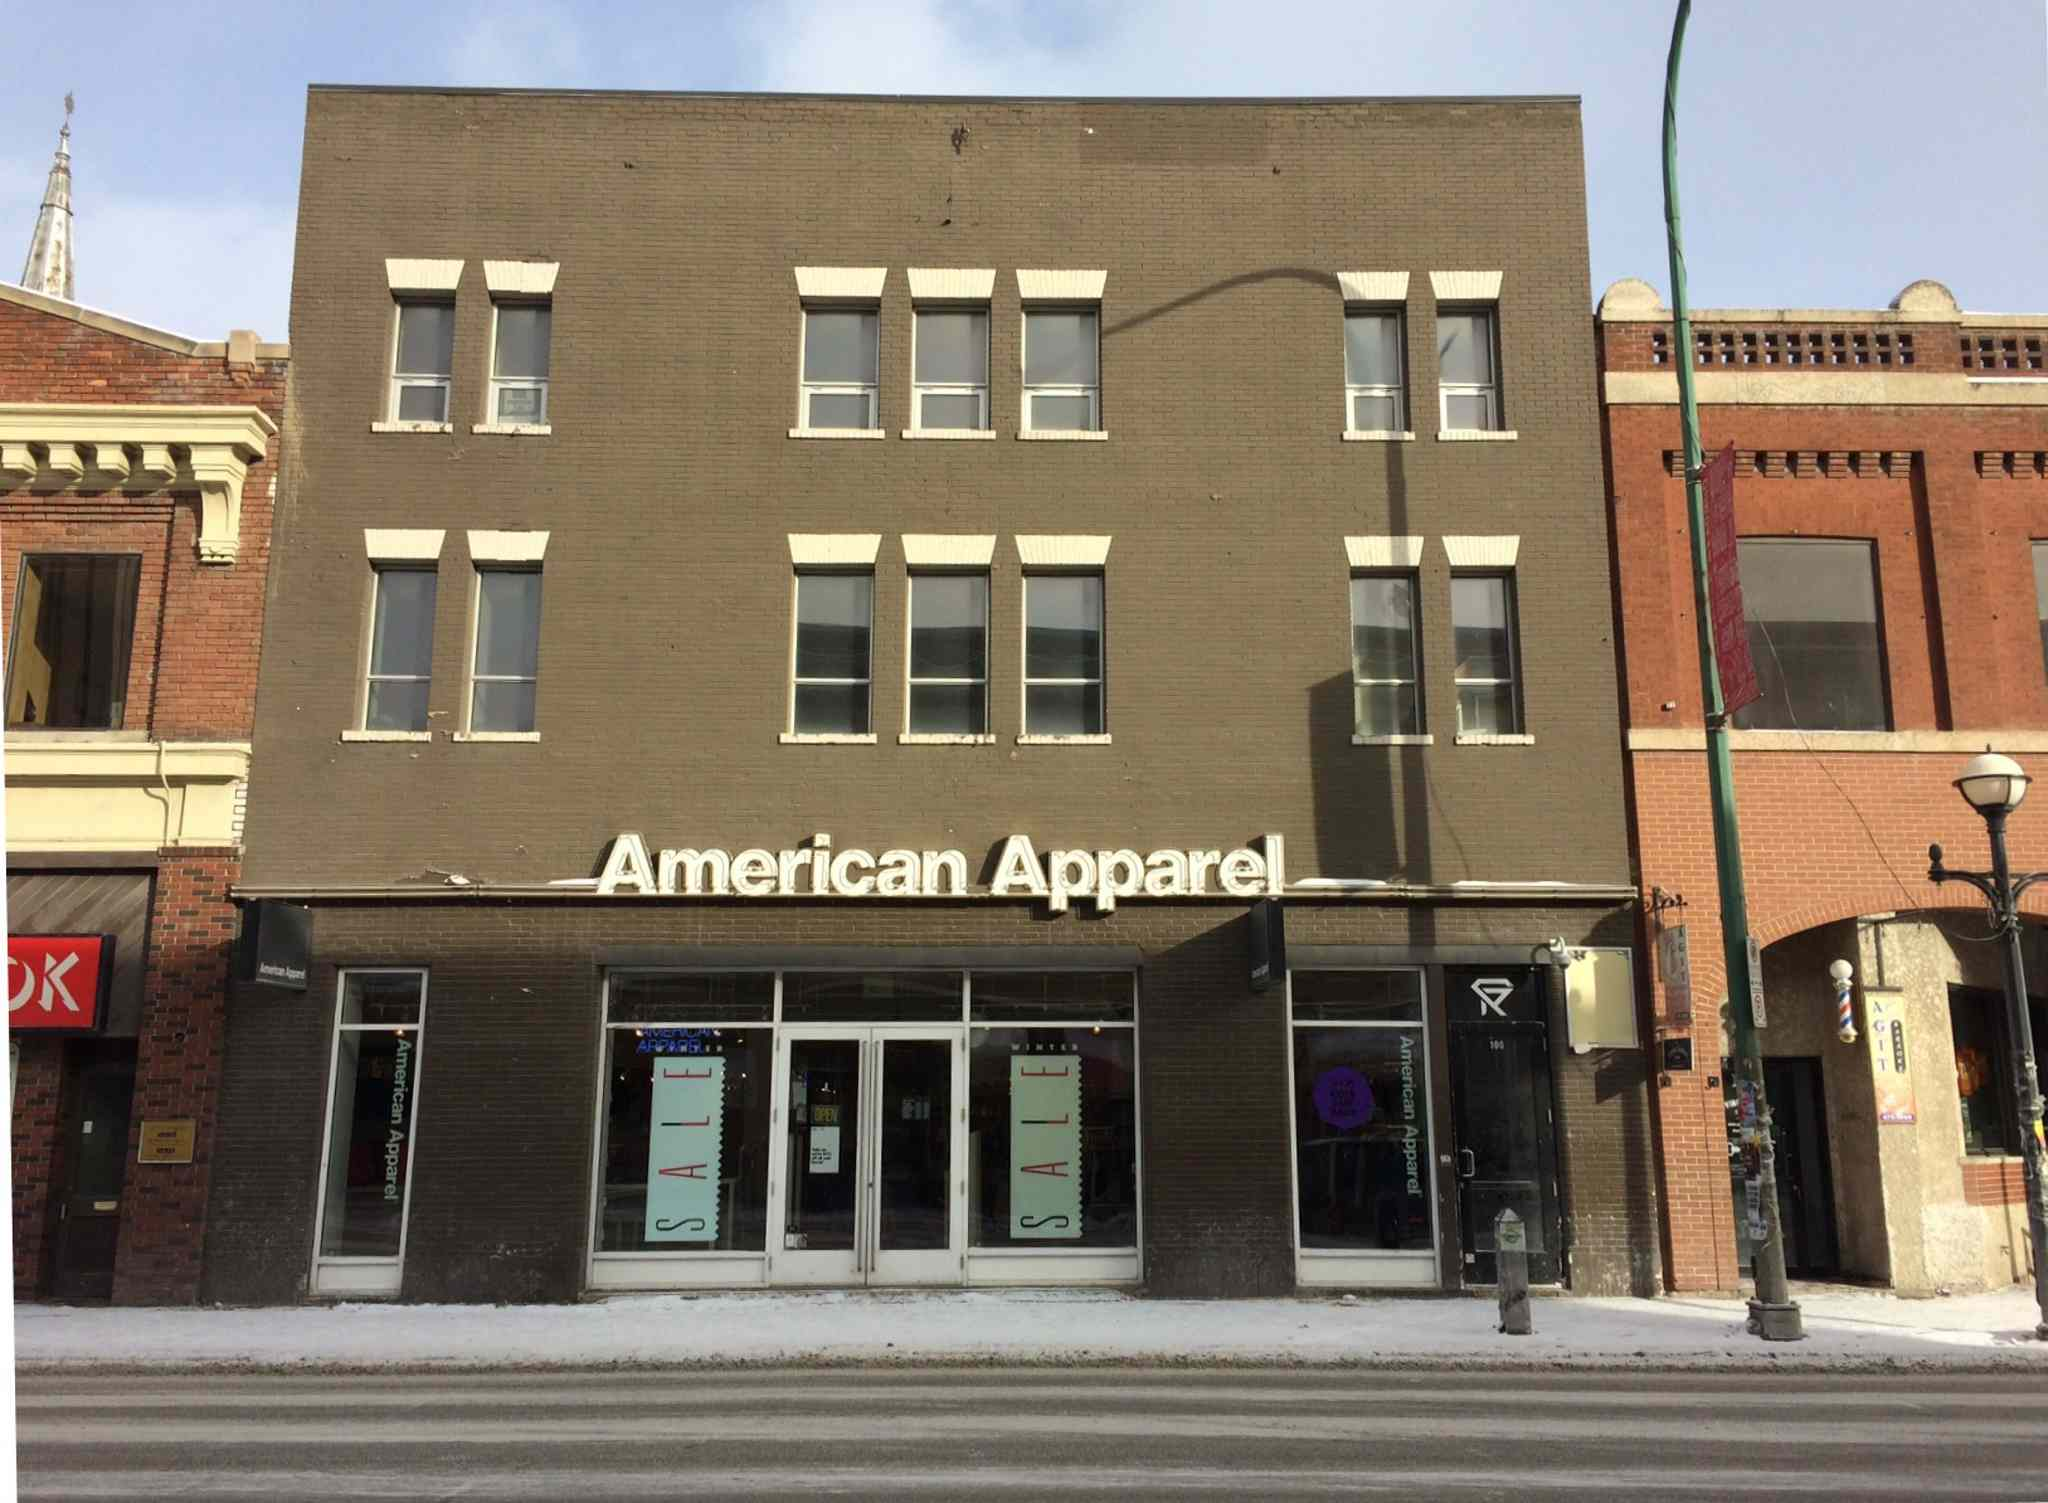 On the main floor, where American Apparel now sits, was the Alternative Cabaret/Village Cabaret.